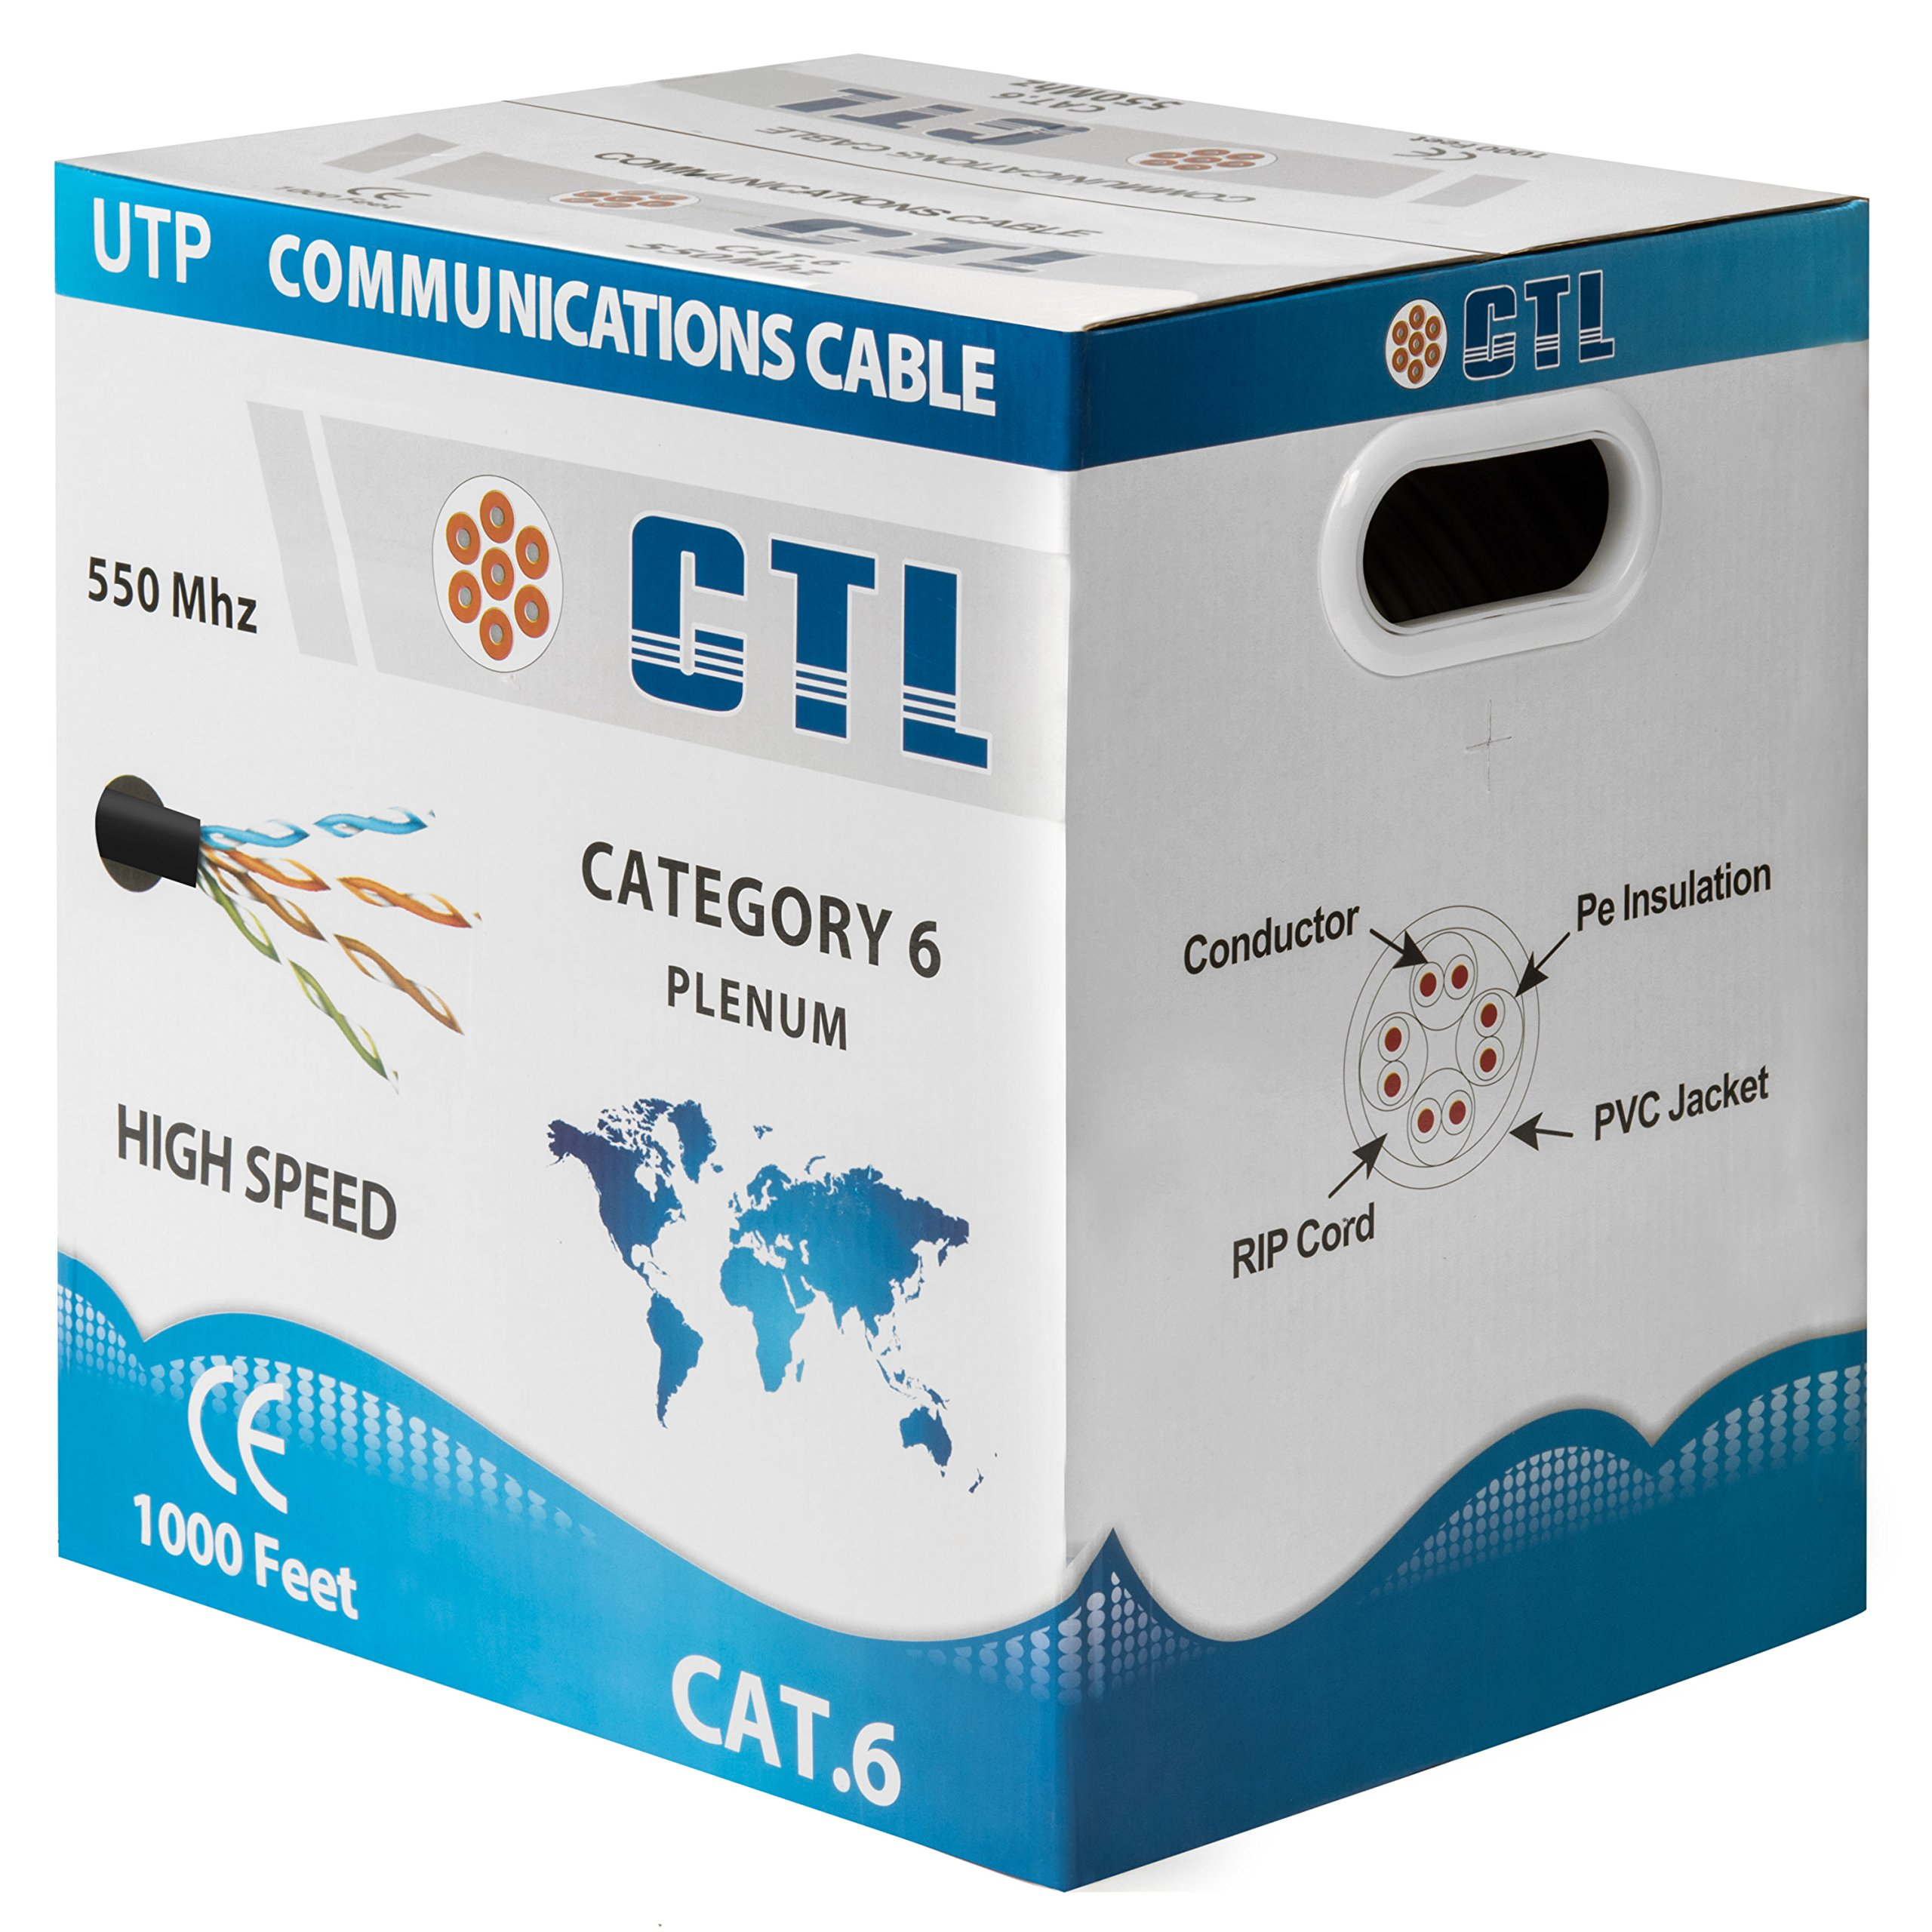 Cat6 Plenum Black Professional UTP Cable with Snagless Technology by CTL (550mhz 1000ft UTP Solid Bulk Cable), Black by CTL